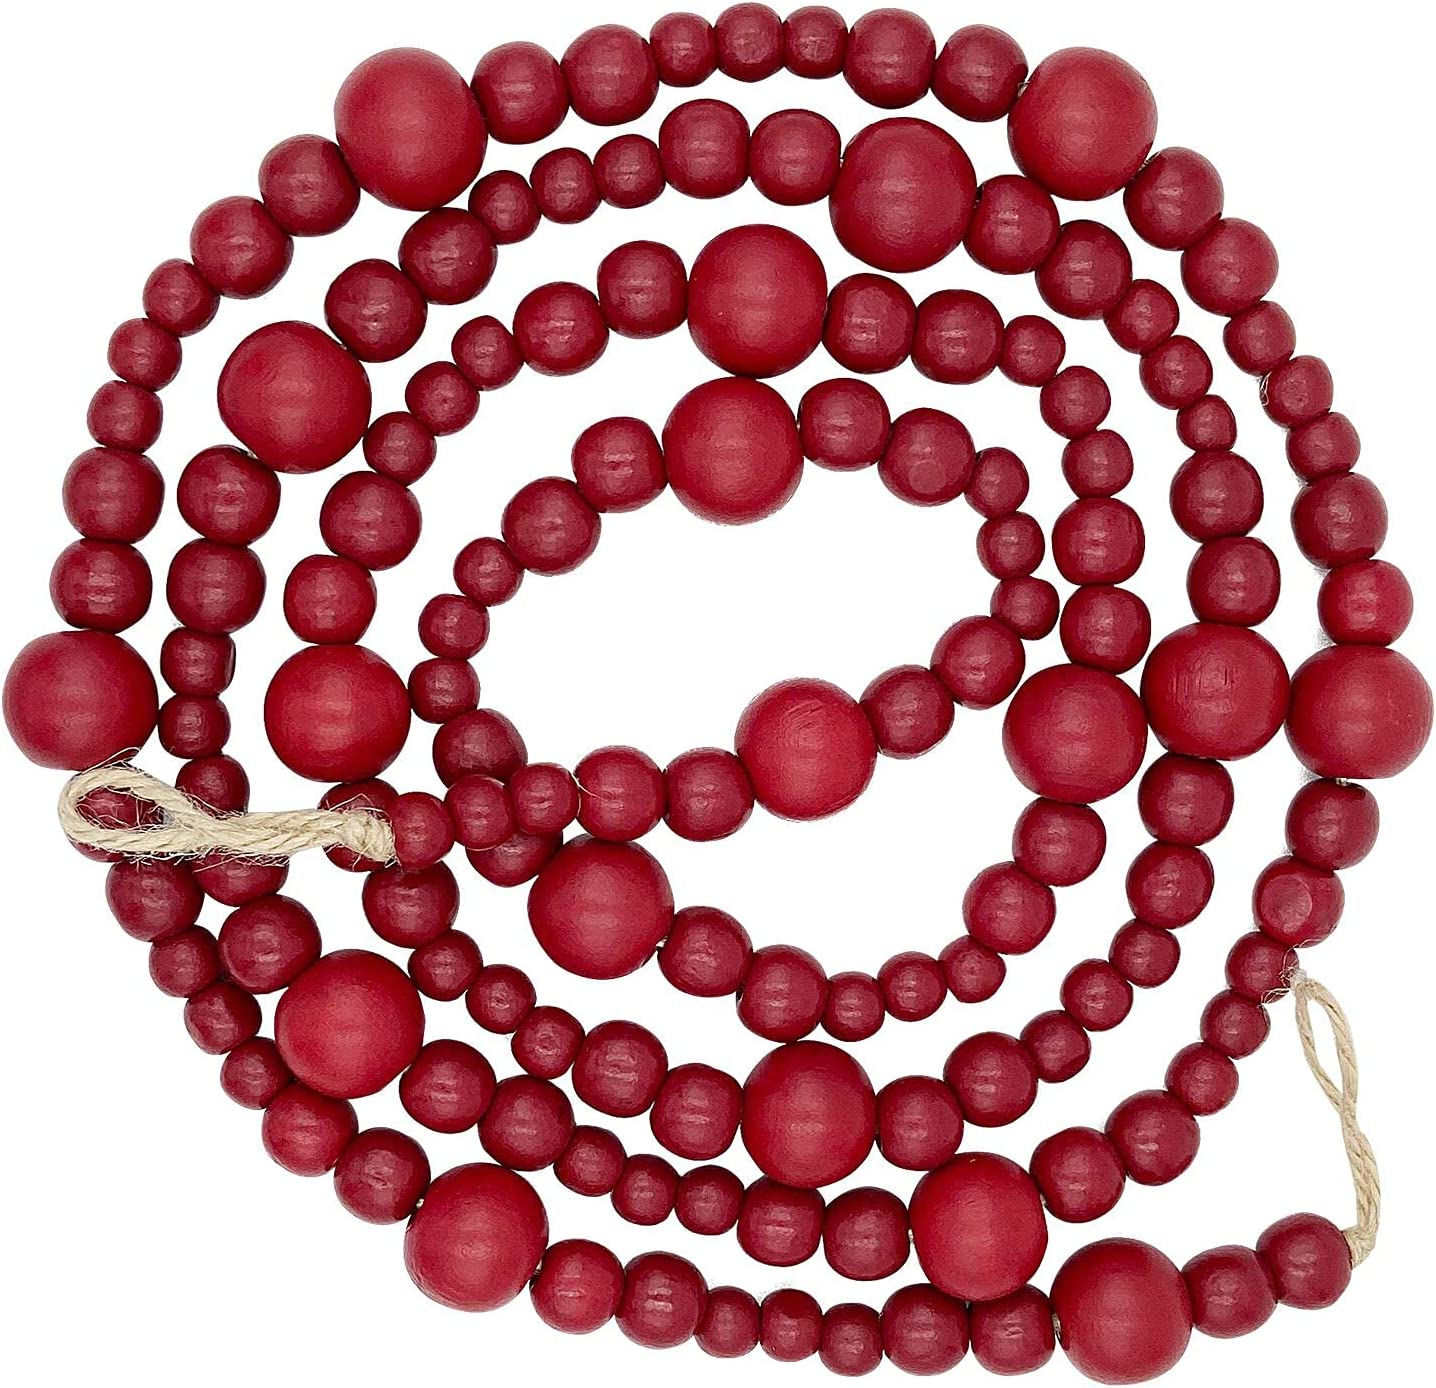 MyLilian Farmhouse Beads 7ft Wood Bead Garland with Christmas TreeHoliday Decorations Rustic Country Decor Prayer Boho Beads Big Wall Hanging Decor (Red)